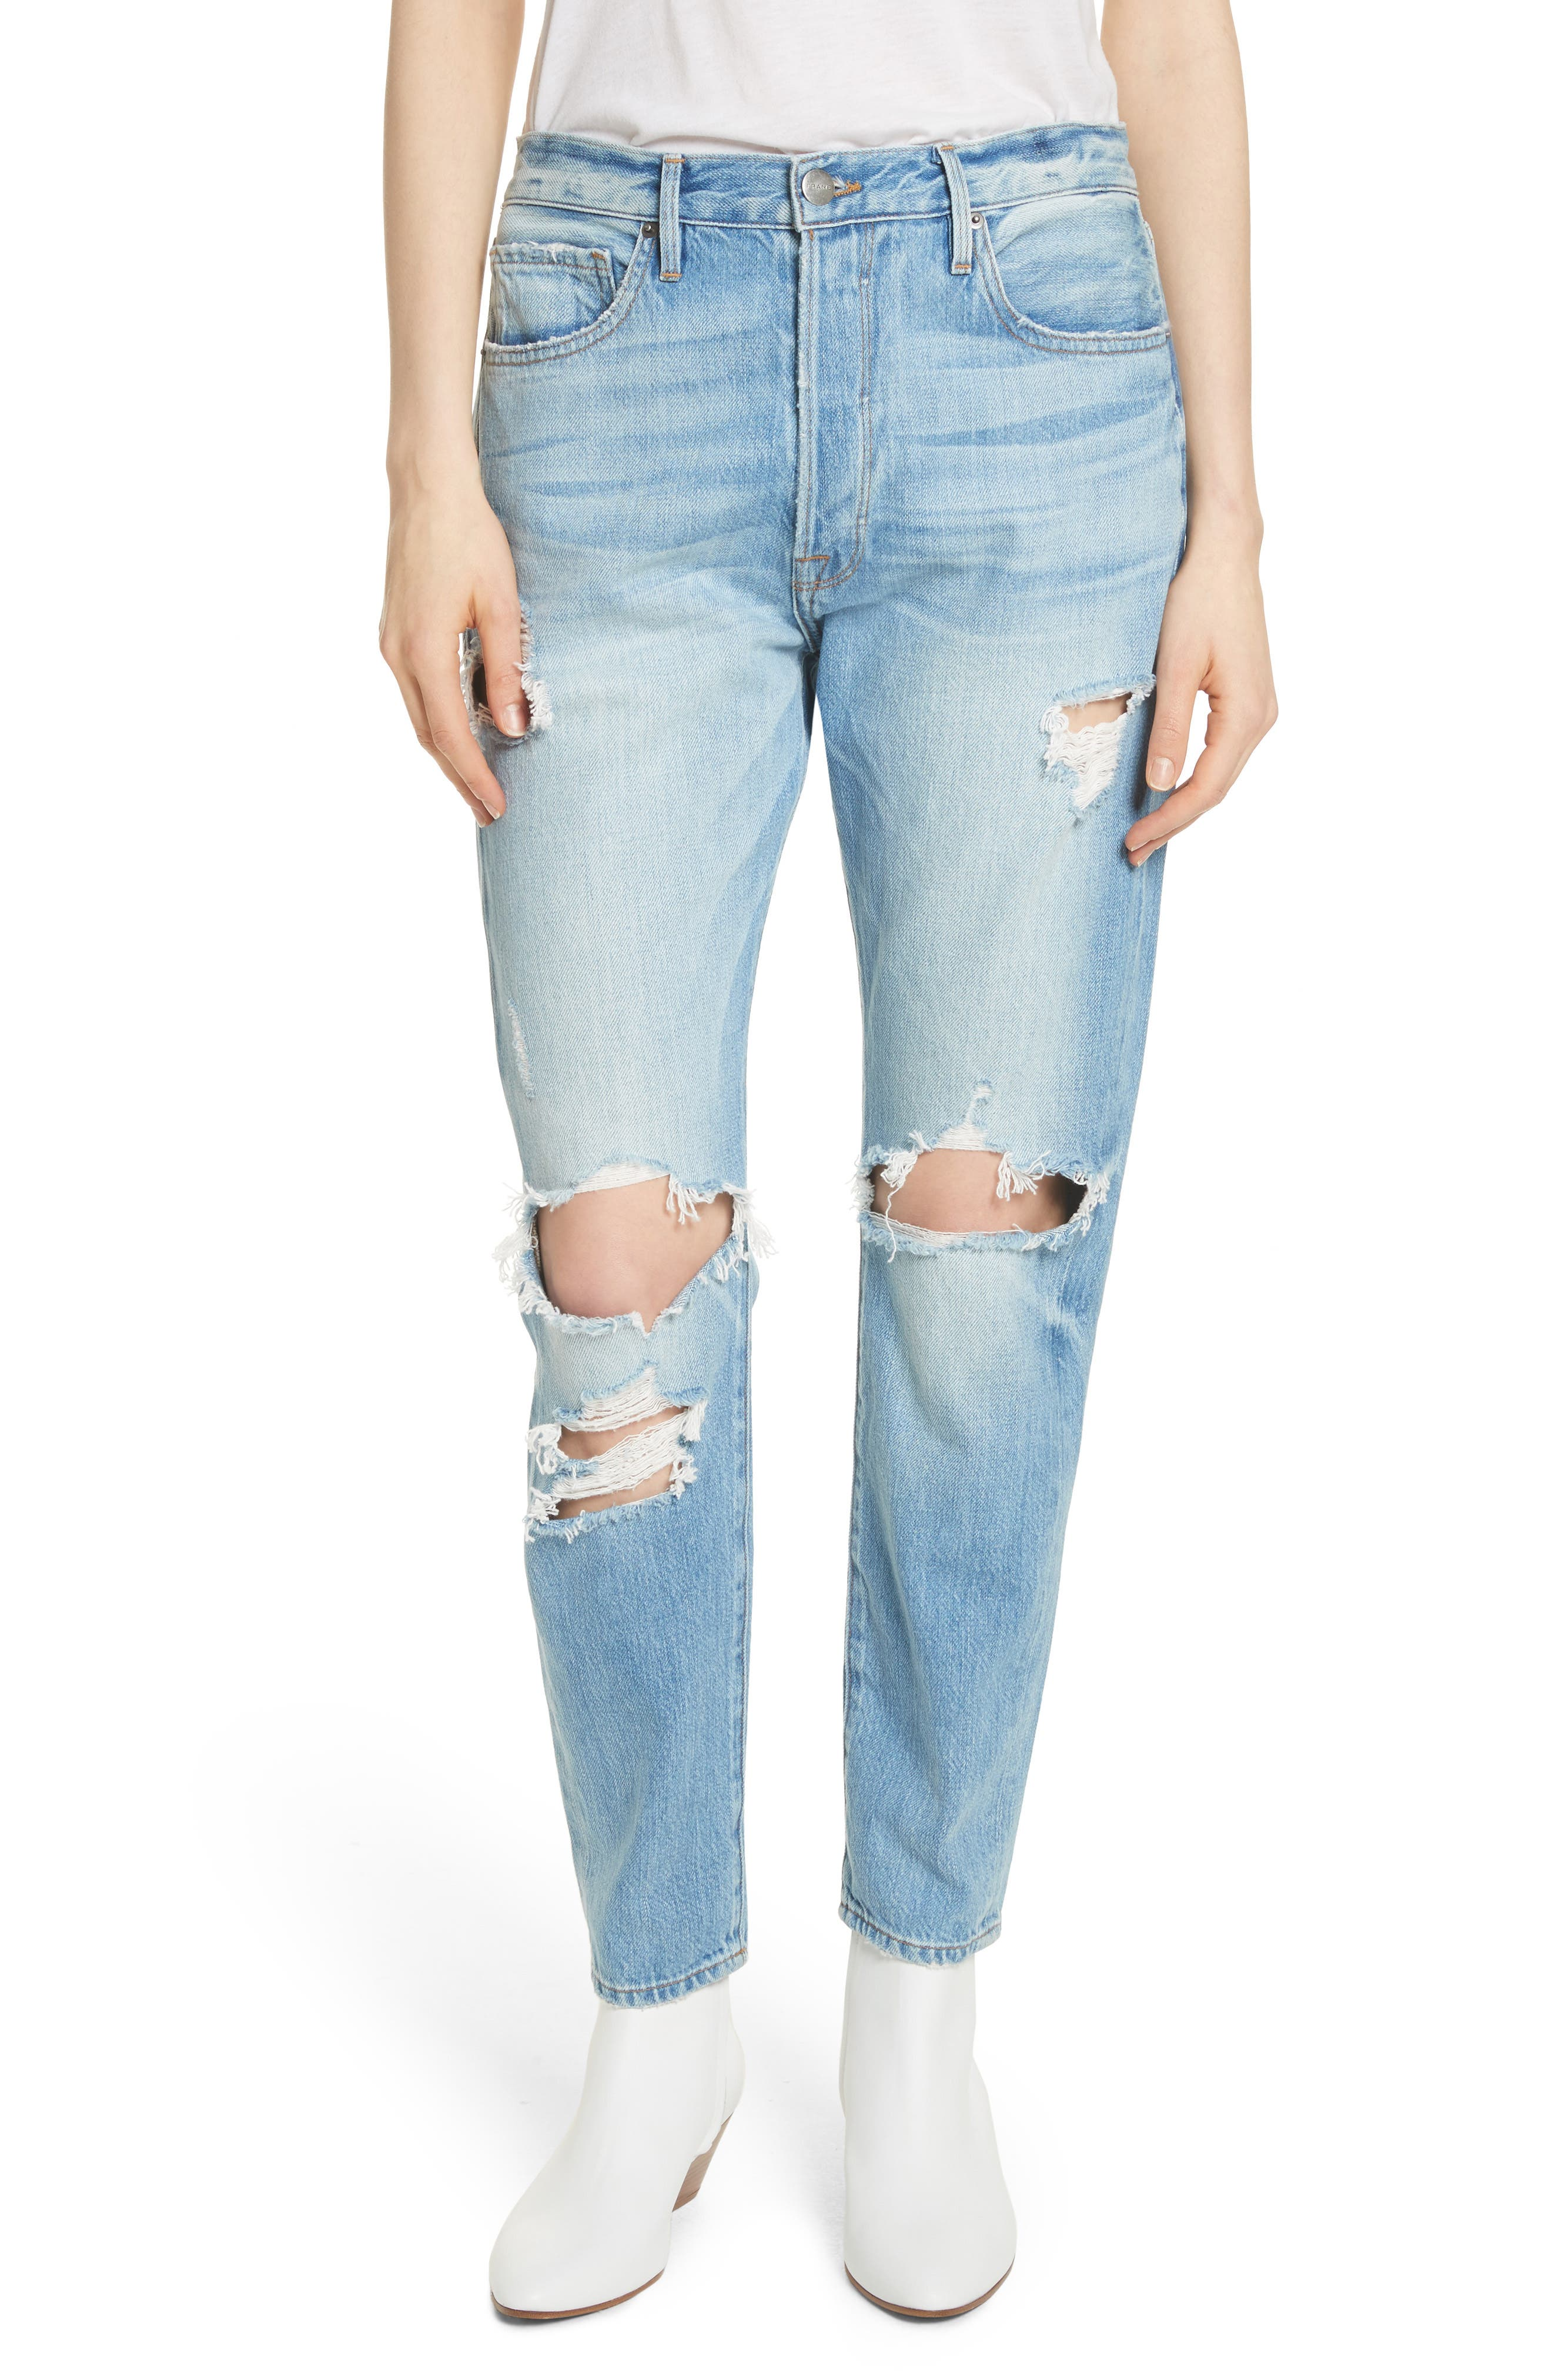 Le Original Ripped High Waist Skinny Jeans,                             Main thumbnail 1, color,                             POMDALE